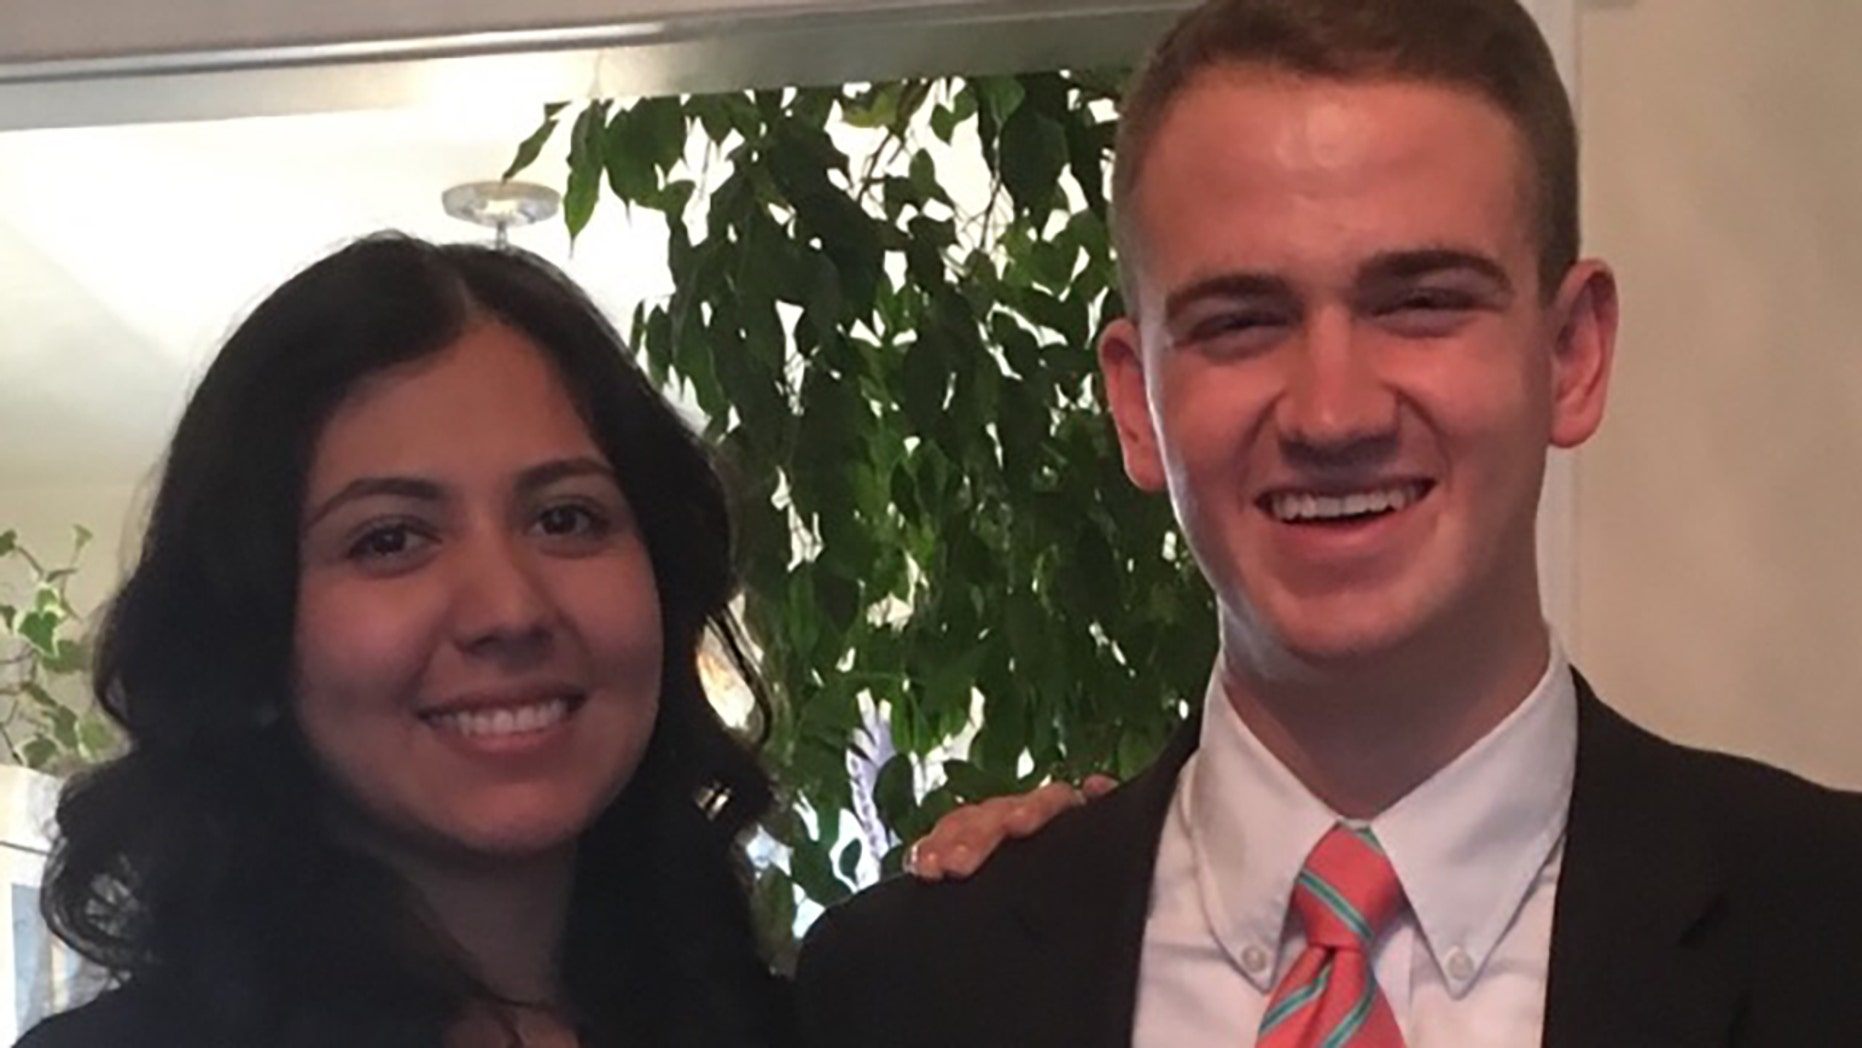 Wesley Kratzer, right, pictured with his wife.